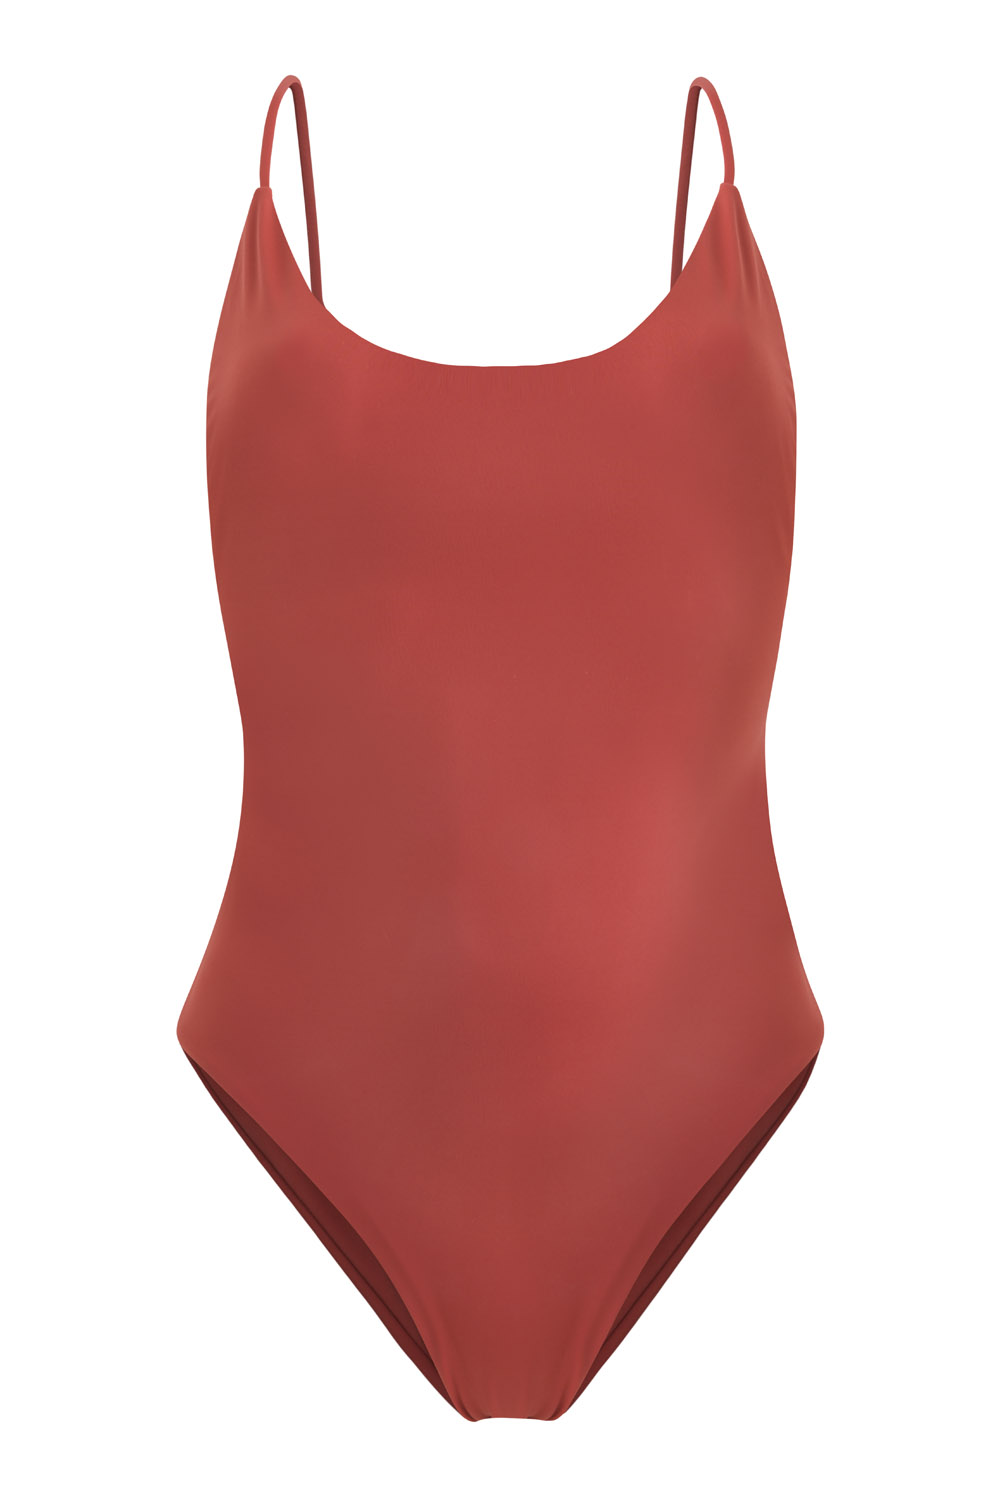 Eco sustainable swimsuit / bañador ecológico sostenible – Alona onepiece in clay, by NOW_THEN